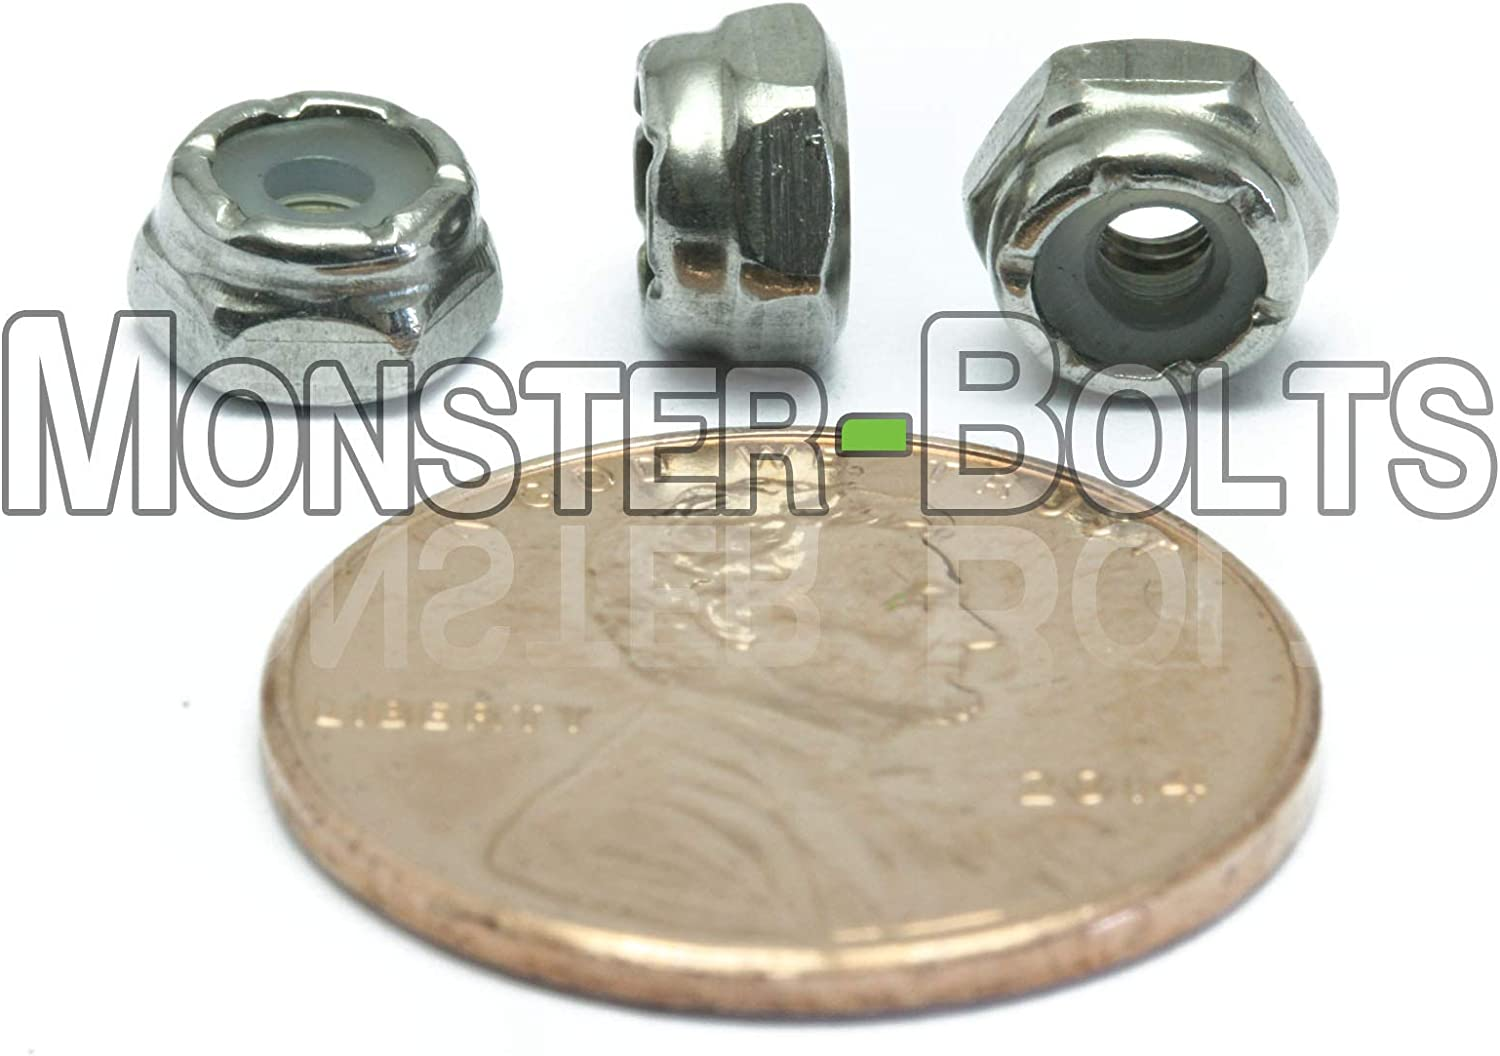 3//32 Width Across Flats ASME B18.6.3 Plain 18-8 Stainless Steel Machine Screw Hex Nut 1//4 Thick Pack of 100 #4-40 Thread Size